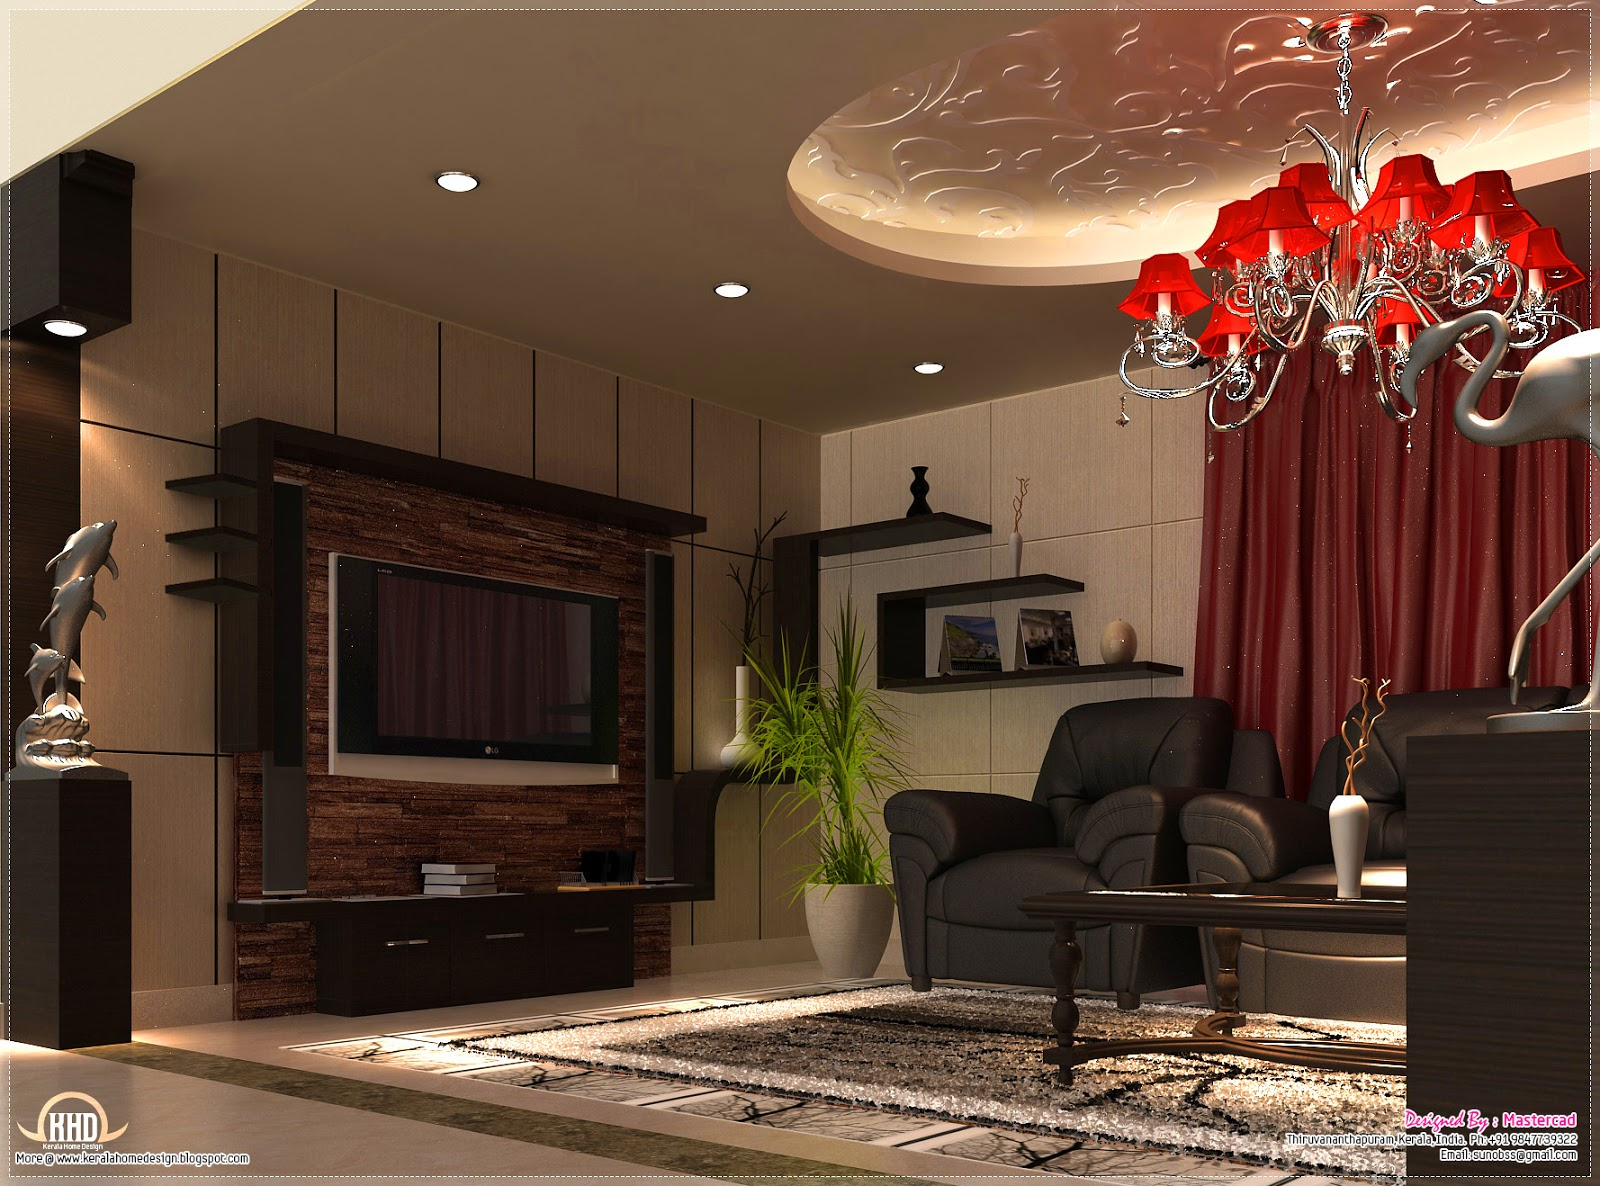 Interior design ideas kerala home design and floor plans for Interior designers in my area